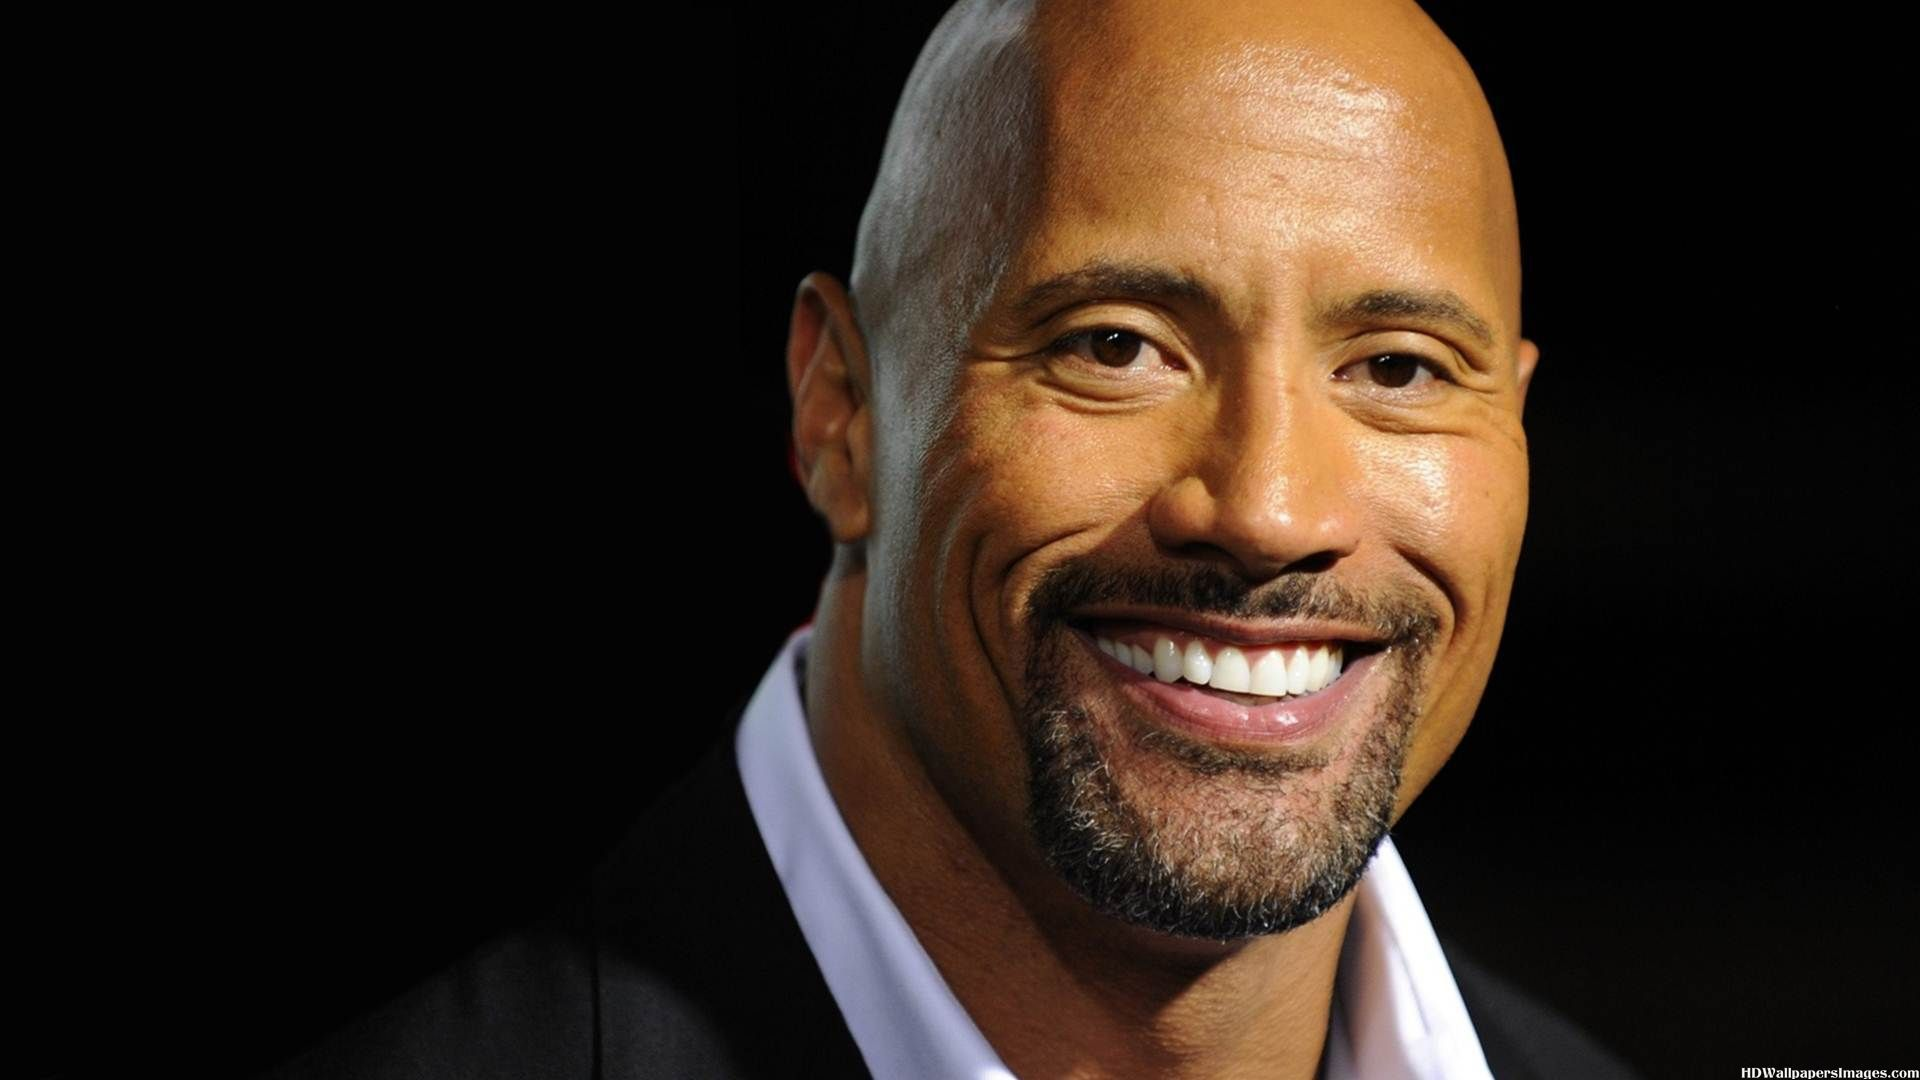 Dwayne Johnson earned a  million dollar salary, leaving the net worth at 15 million in 2017